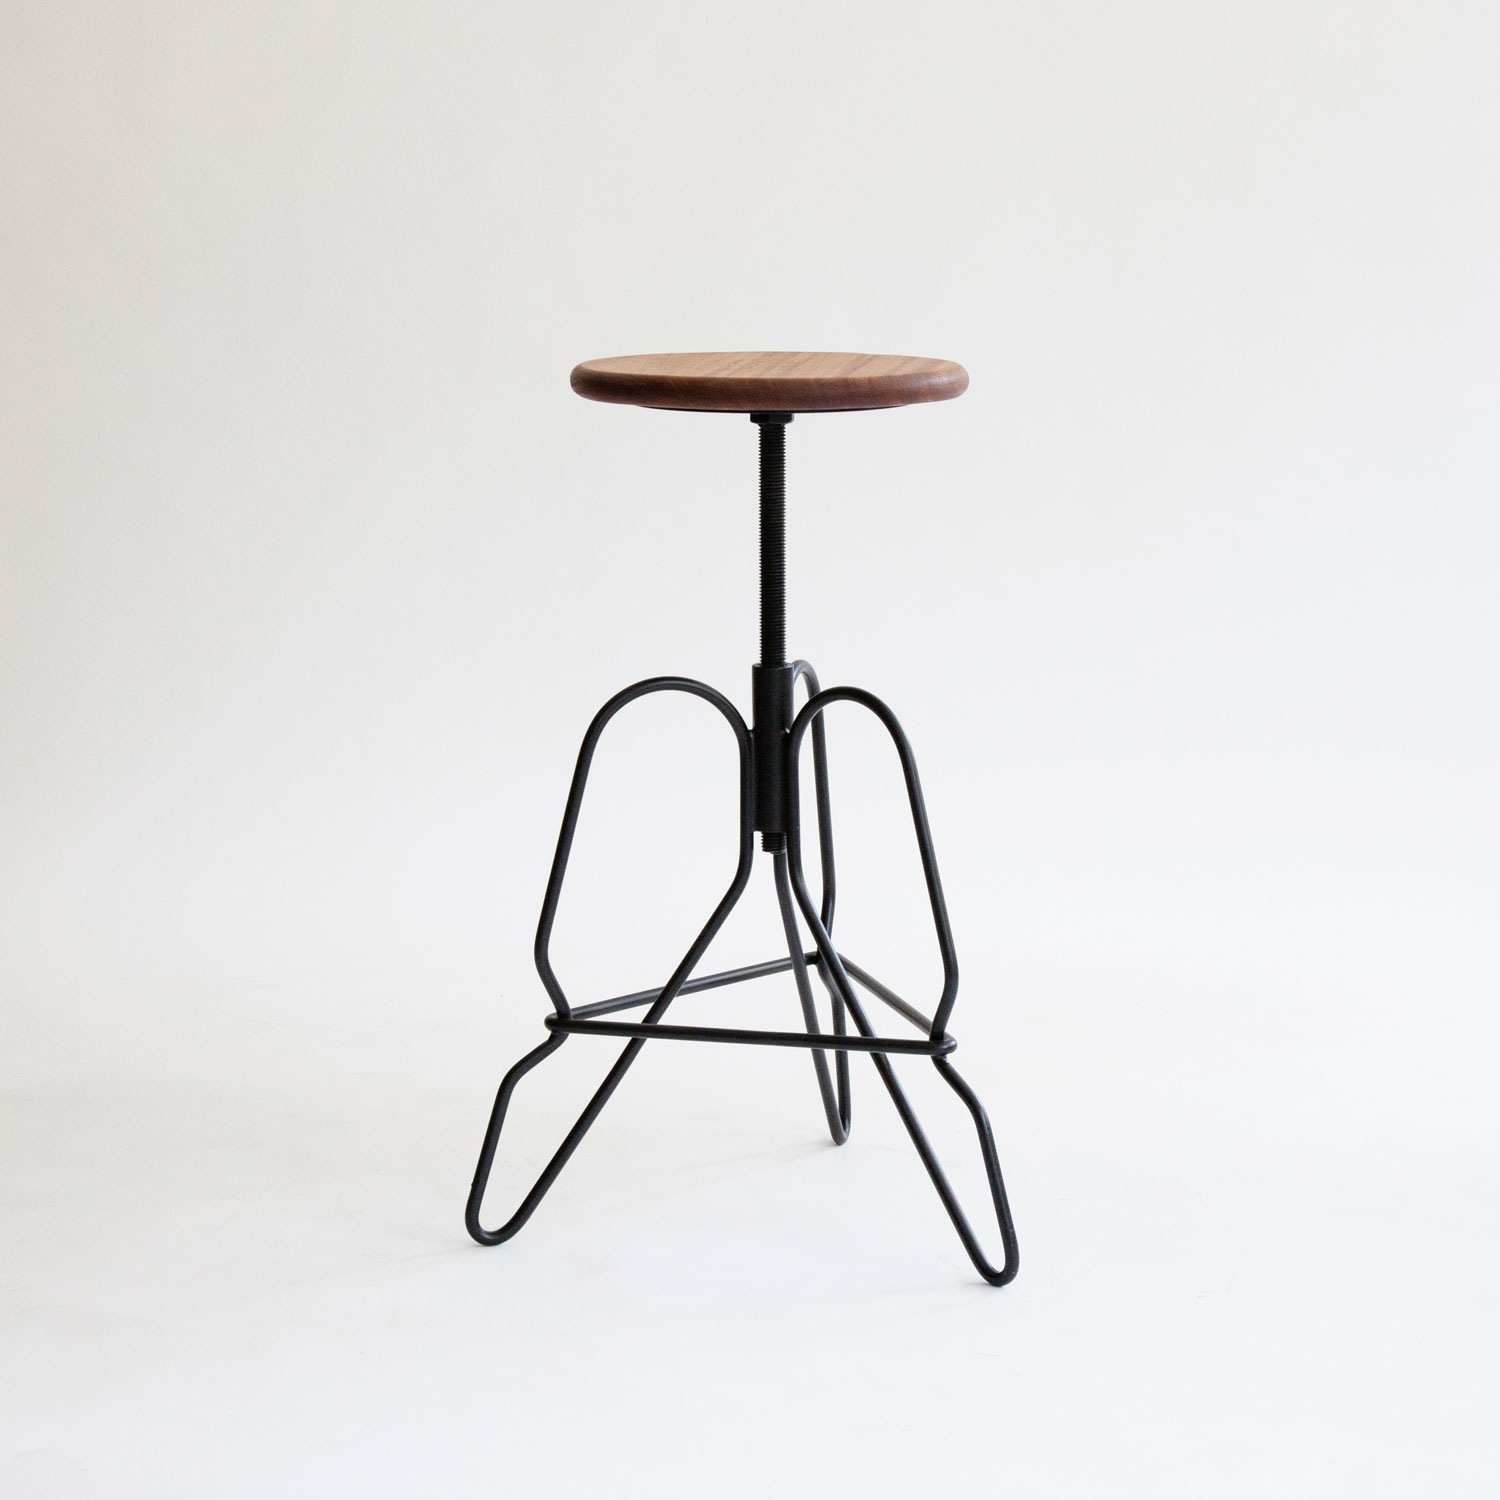 metal-and-wood-mw-chair-01-wooden.jpg